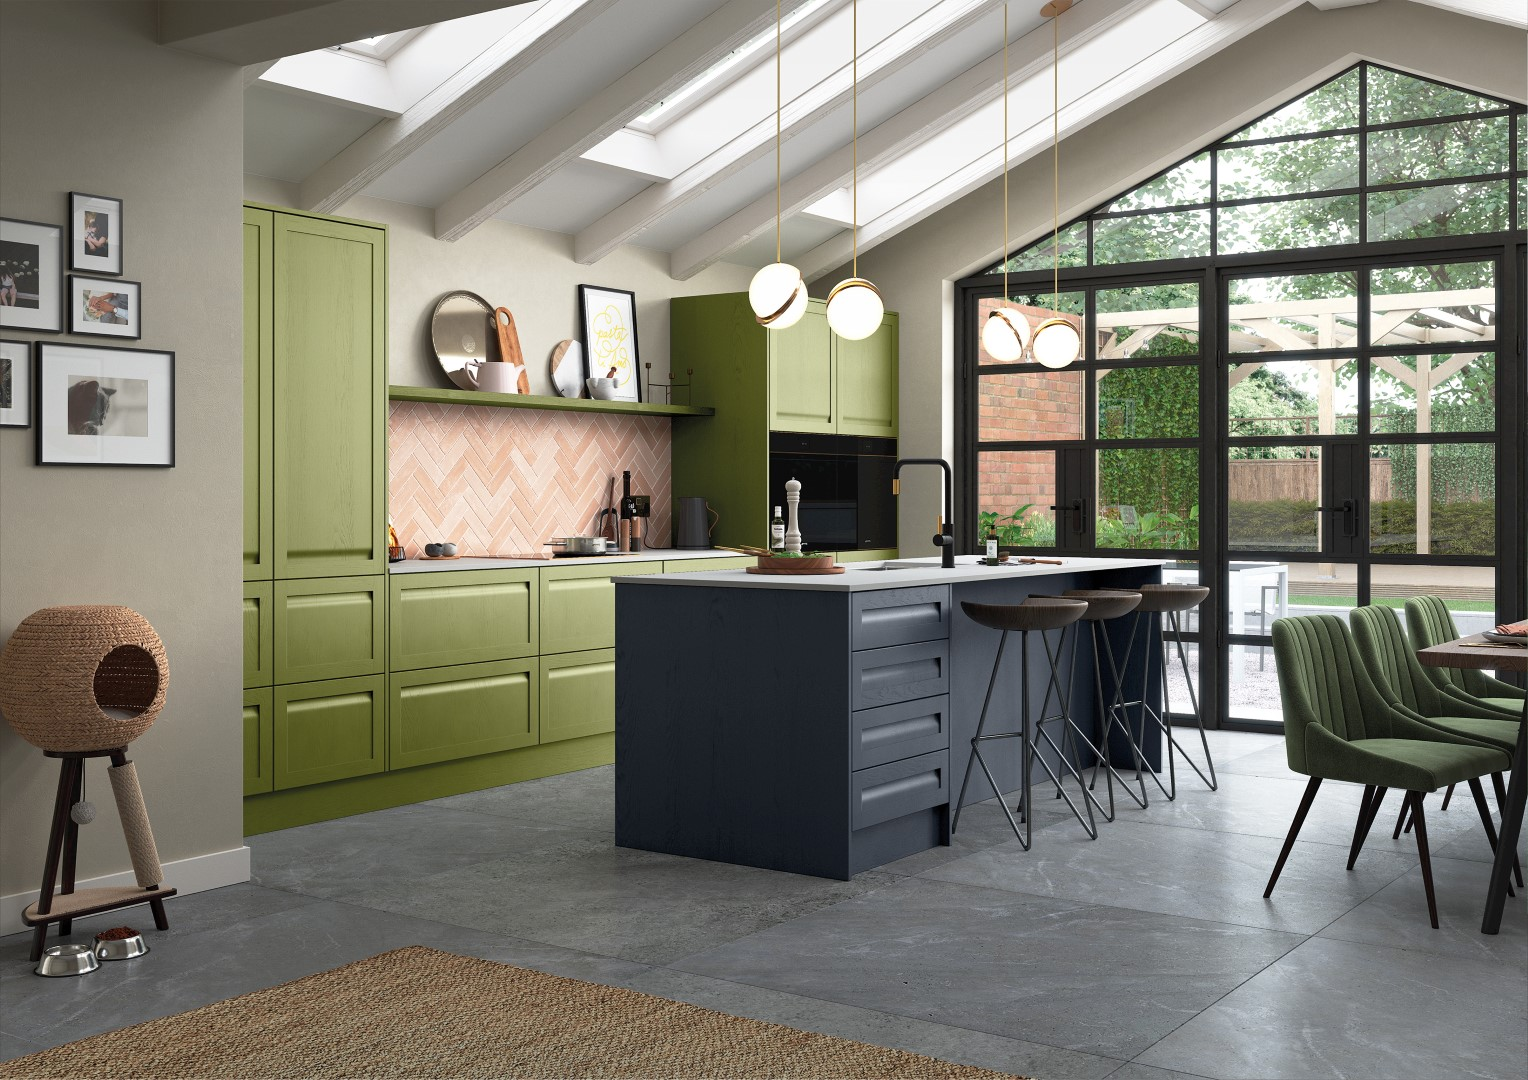 Harborne Slate Blue, Stone and Citrus Green - Kitchen Design - Alan Kelly Kitchens - Waterford - 1